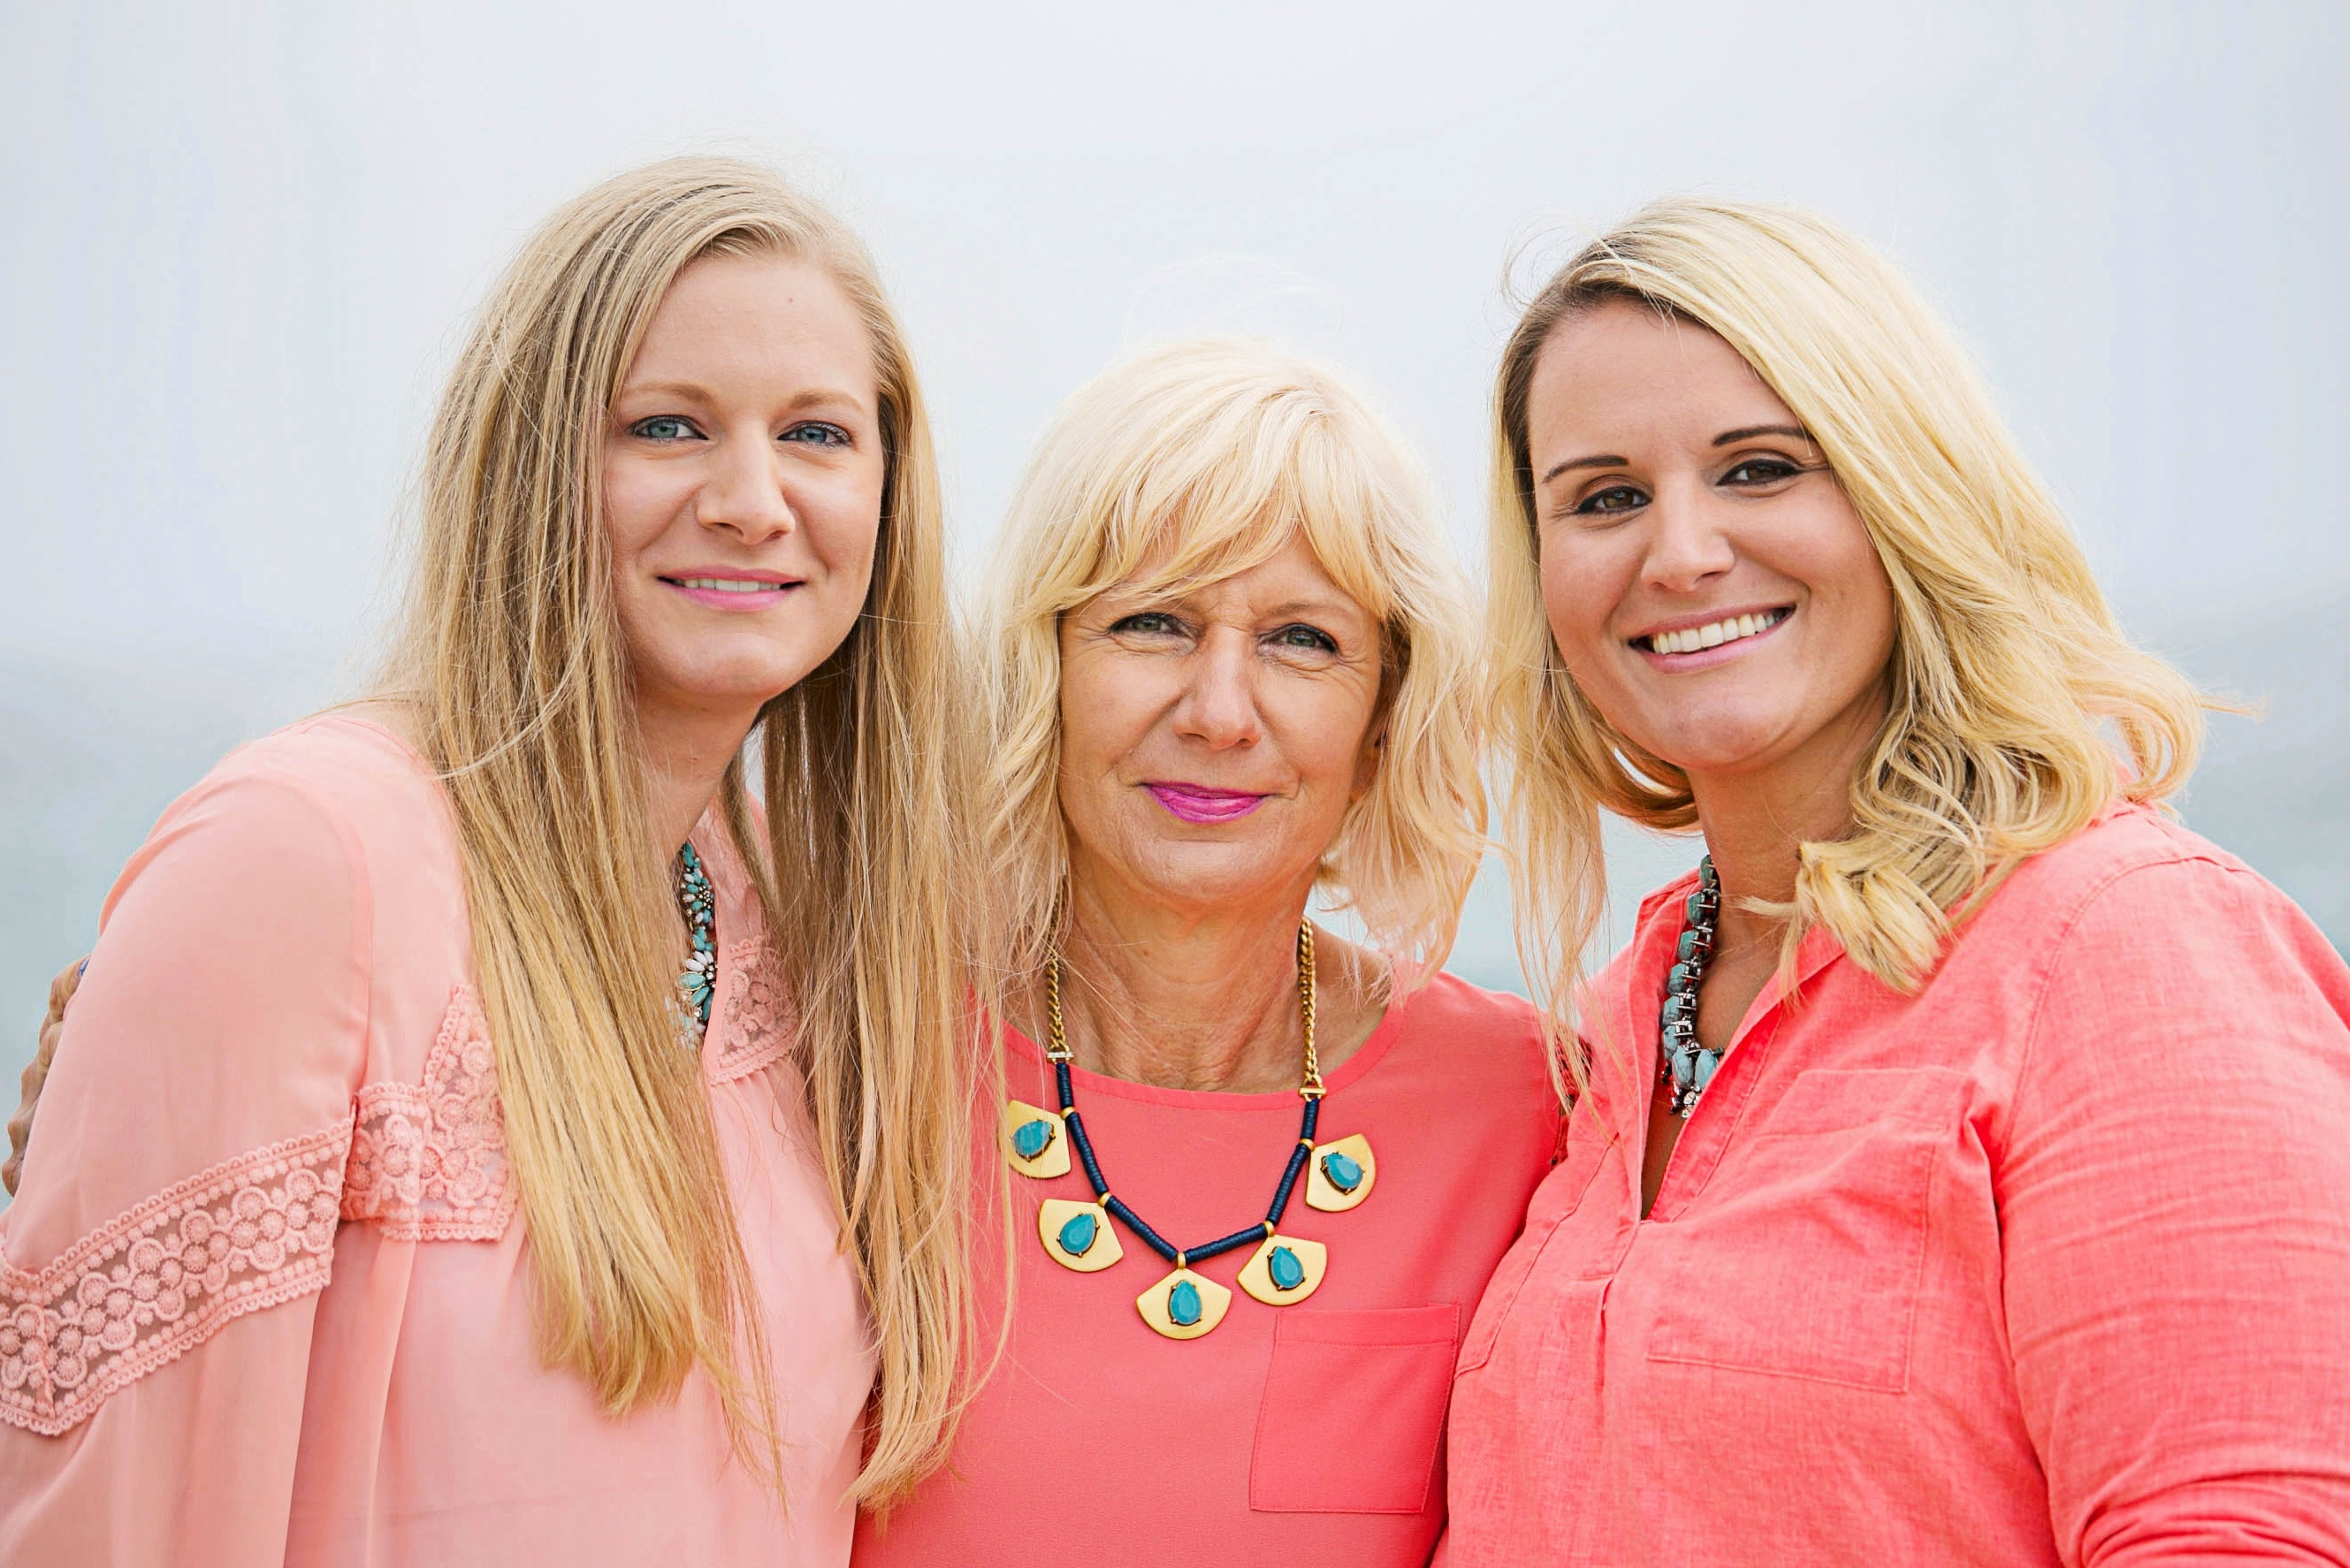 Kara Hyvarinen, pictured left, with her mom Kay and her sister Keli